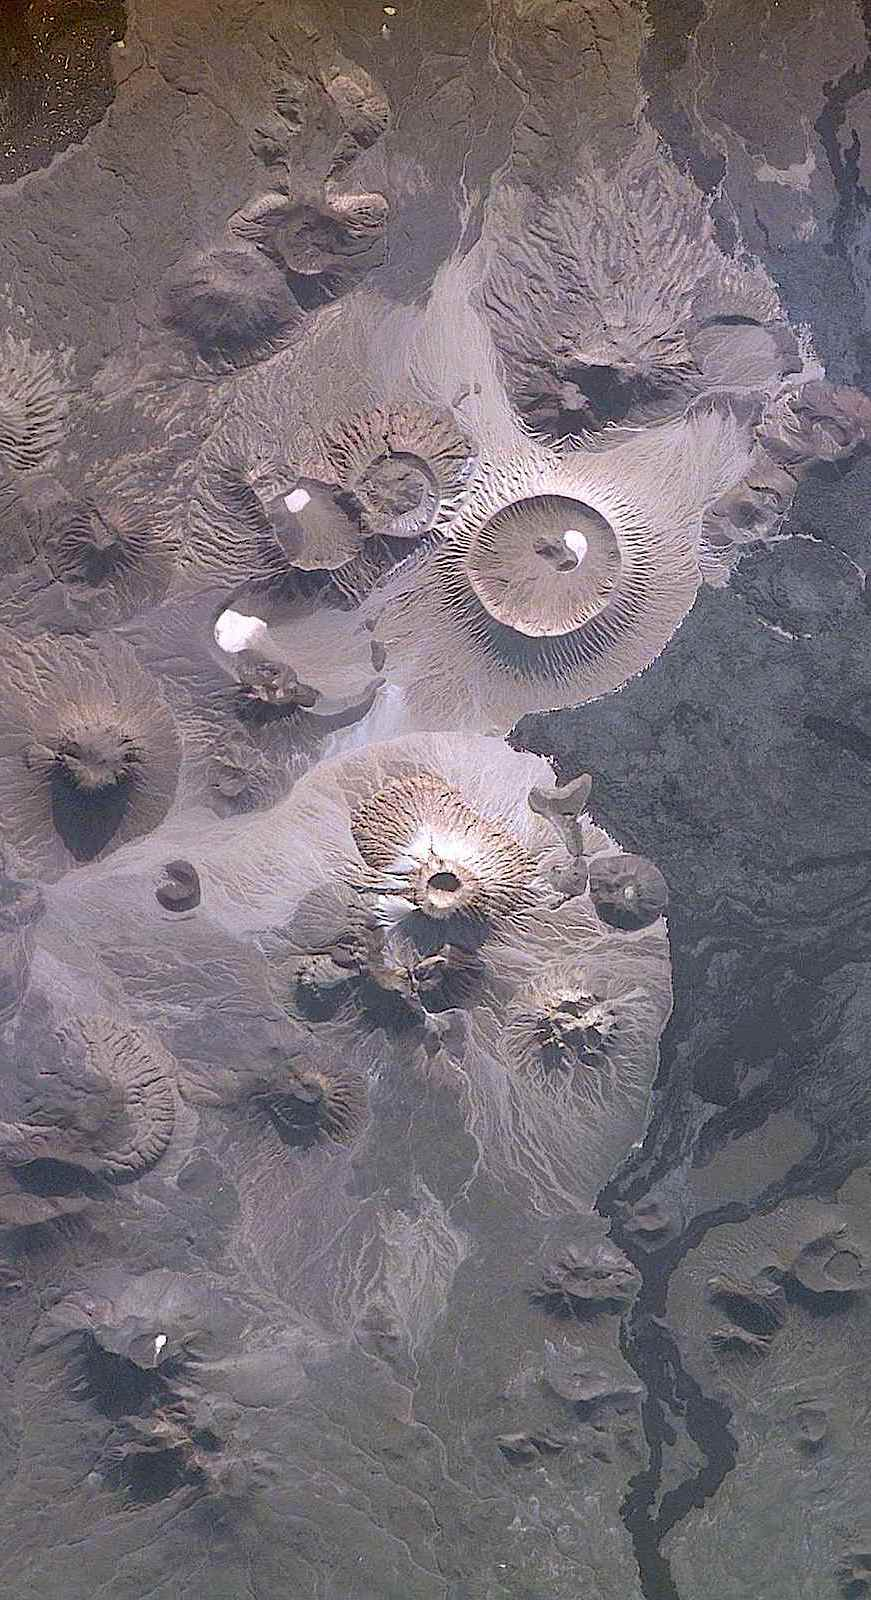 the lunar surface from above, a color photograph